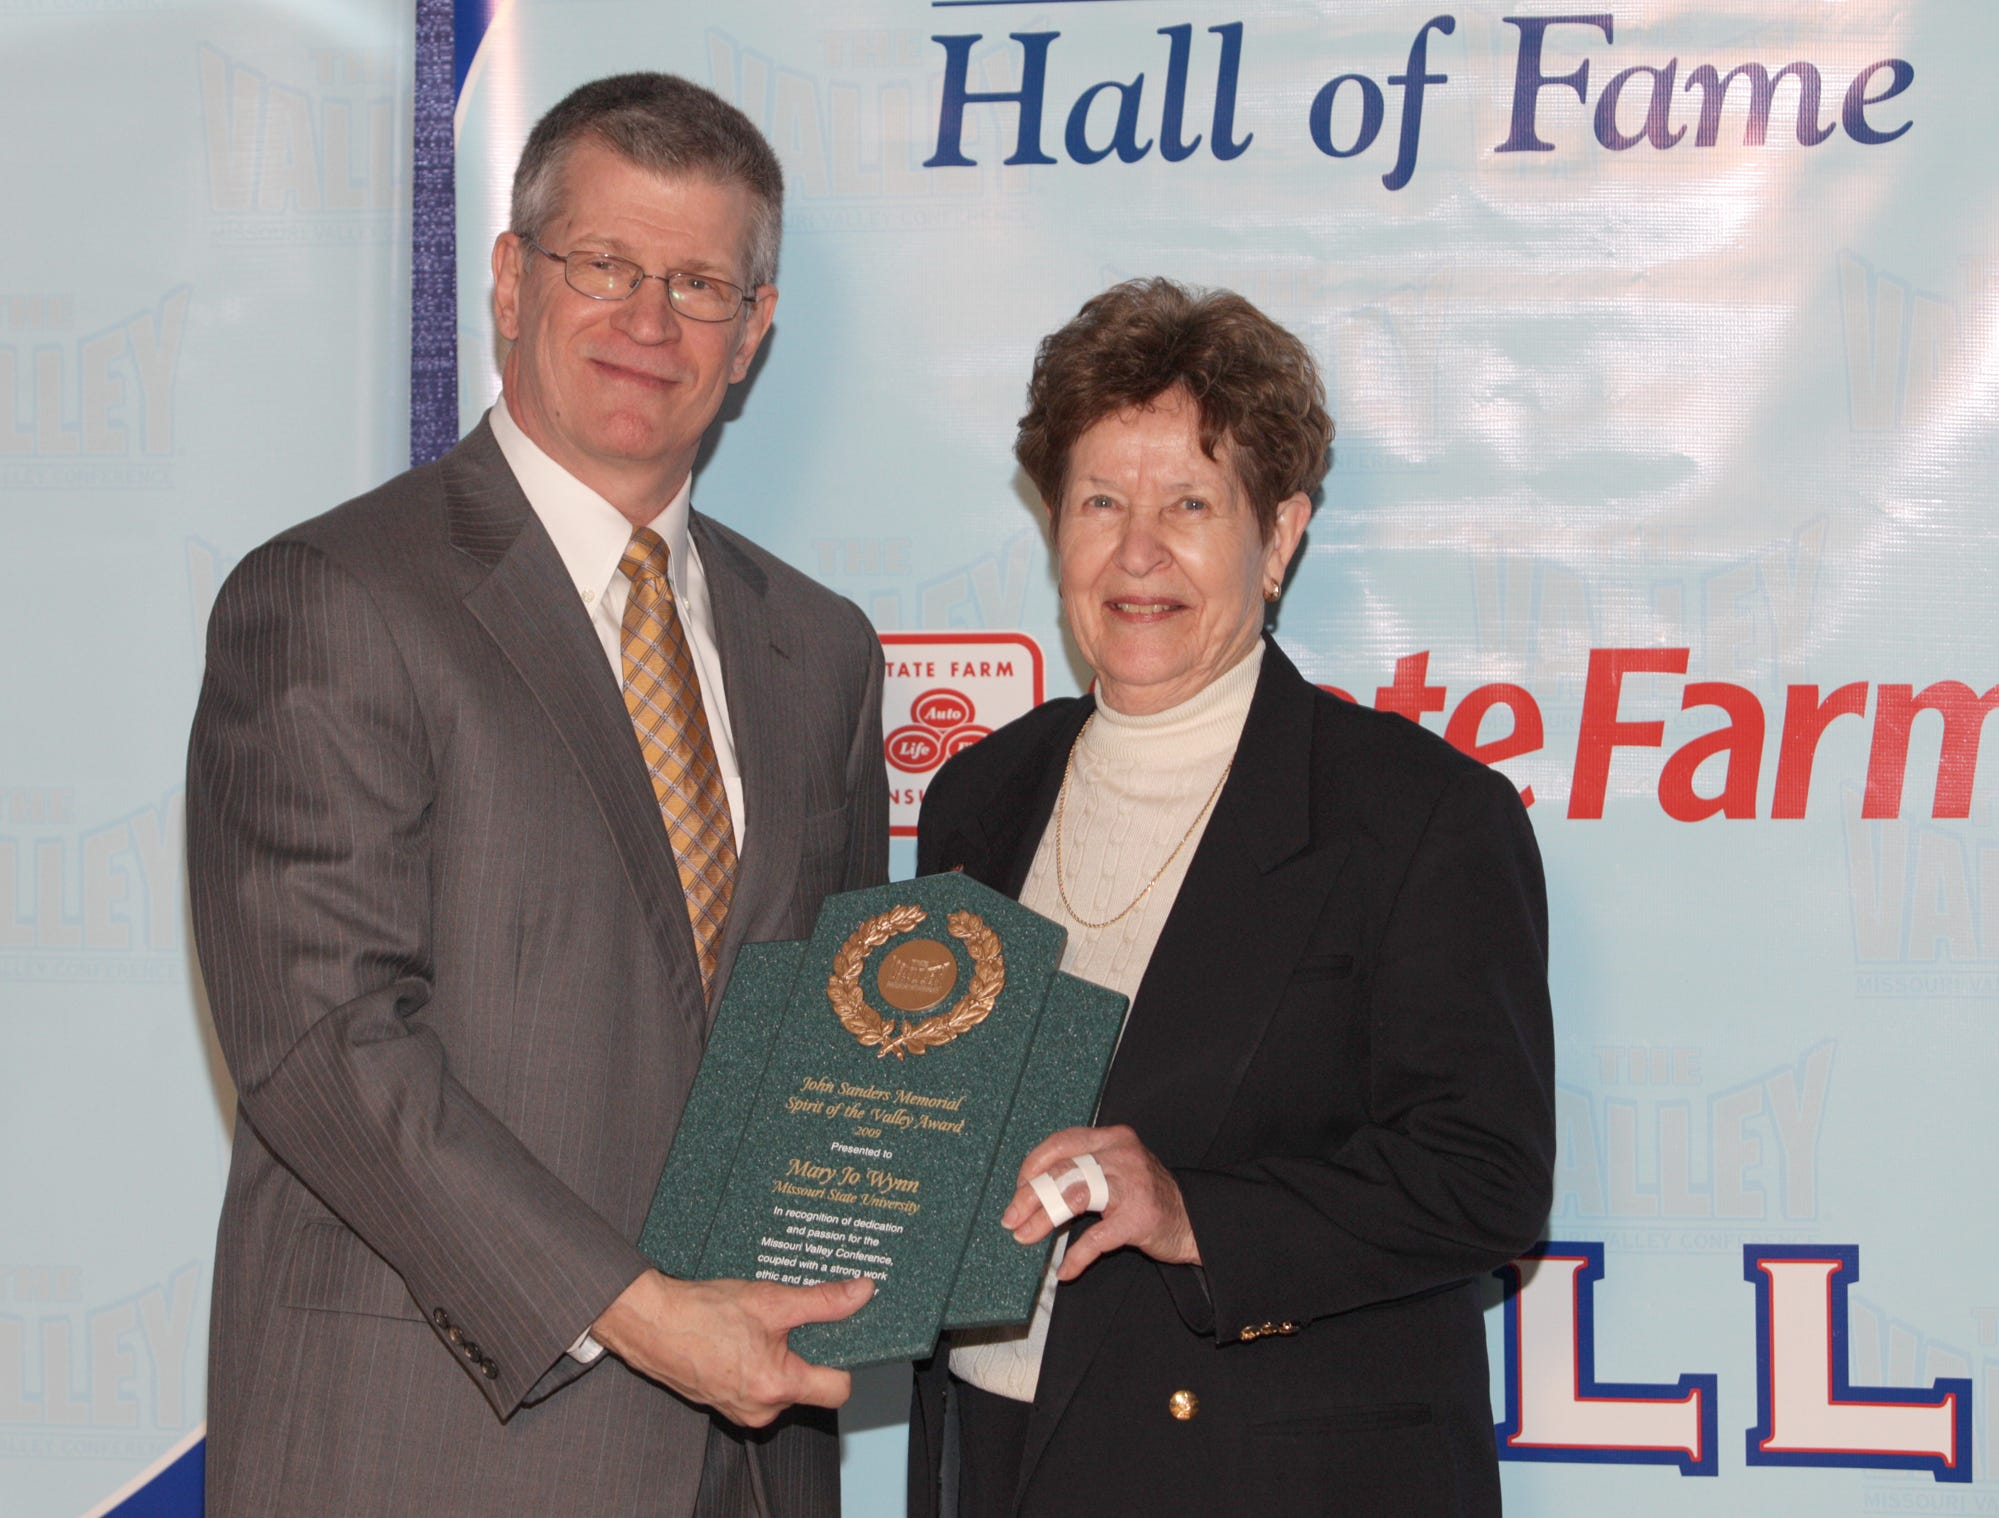 MVC Commissioner Doug Elgin stands with Former Missouri State University of Women's Athletic Dr. Mary Jo Wynn at the MVC Hall of Fame induction in 2013.